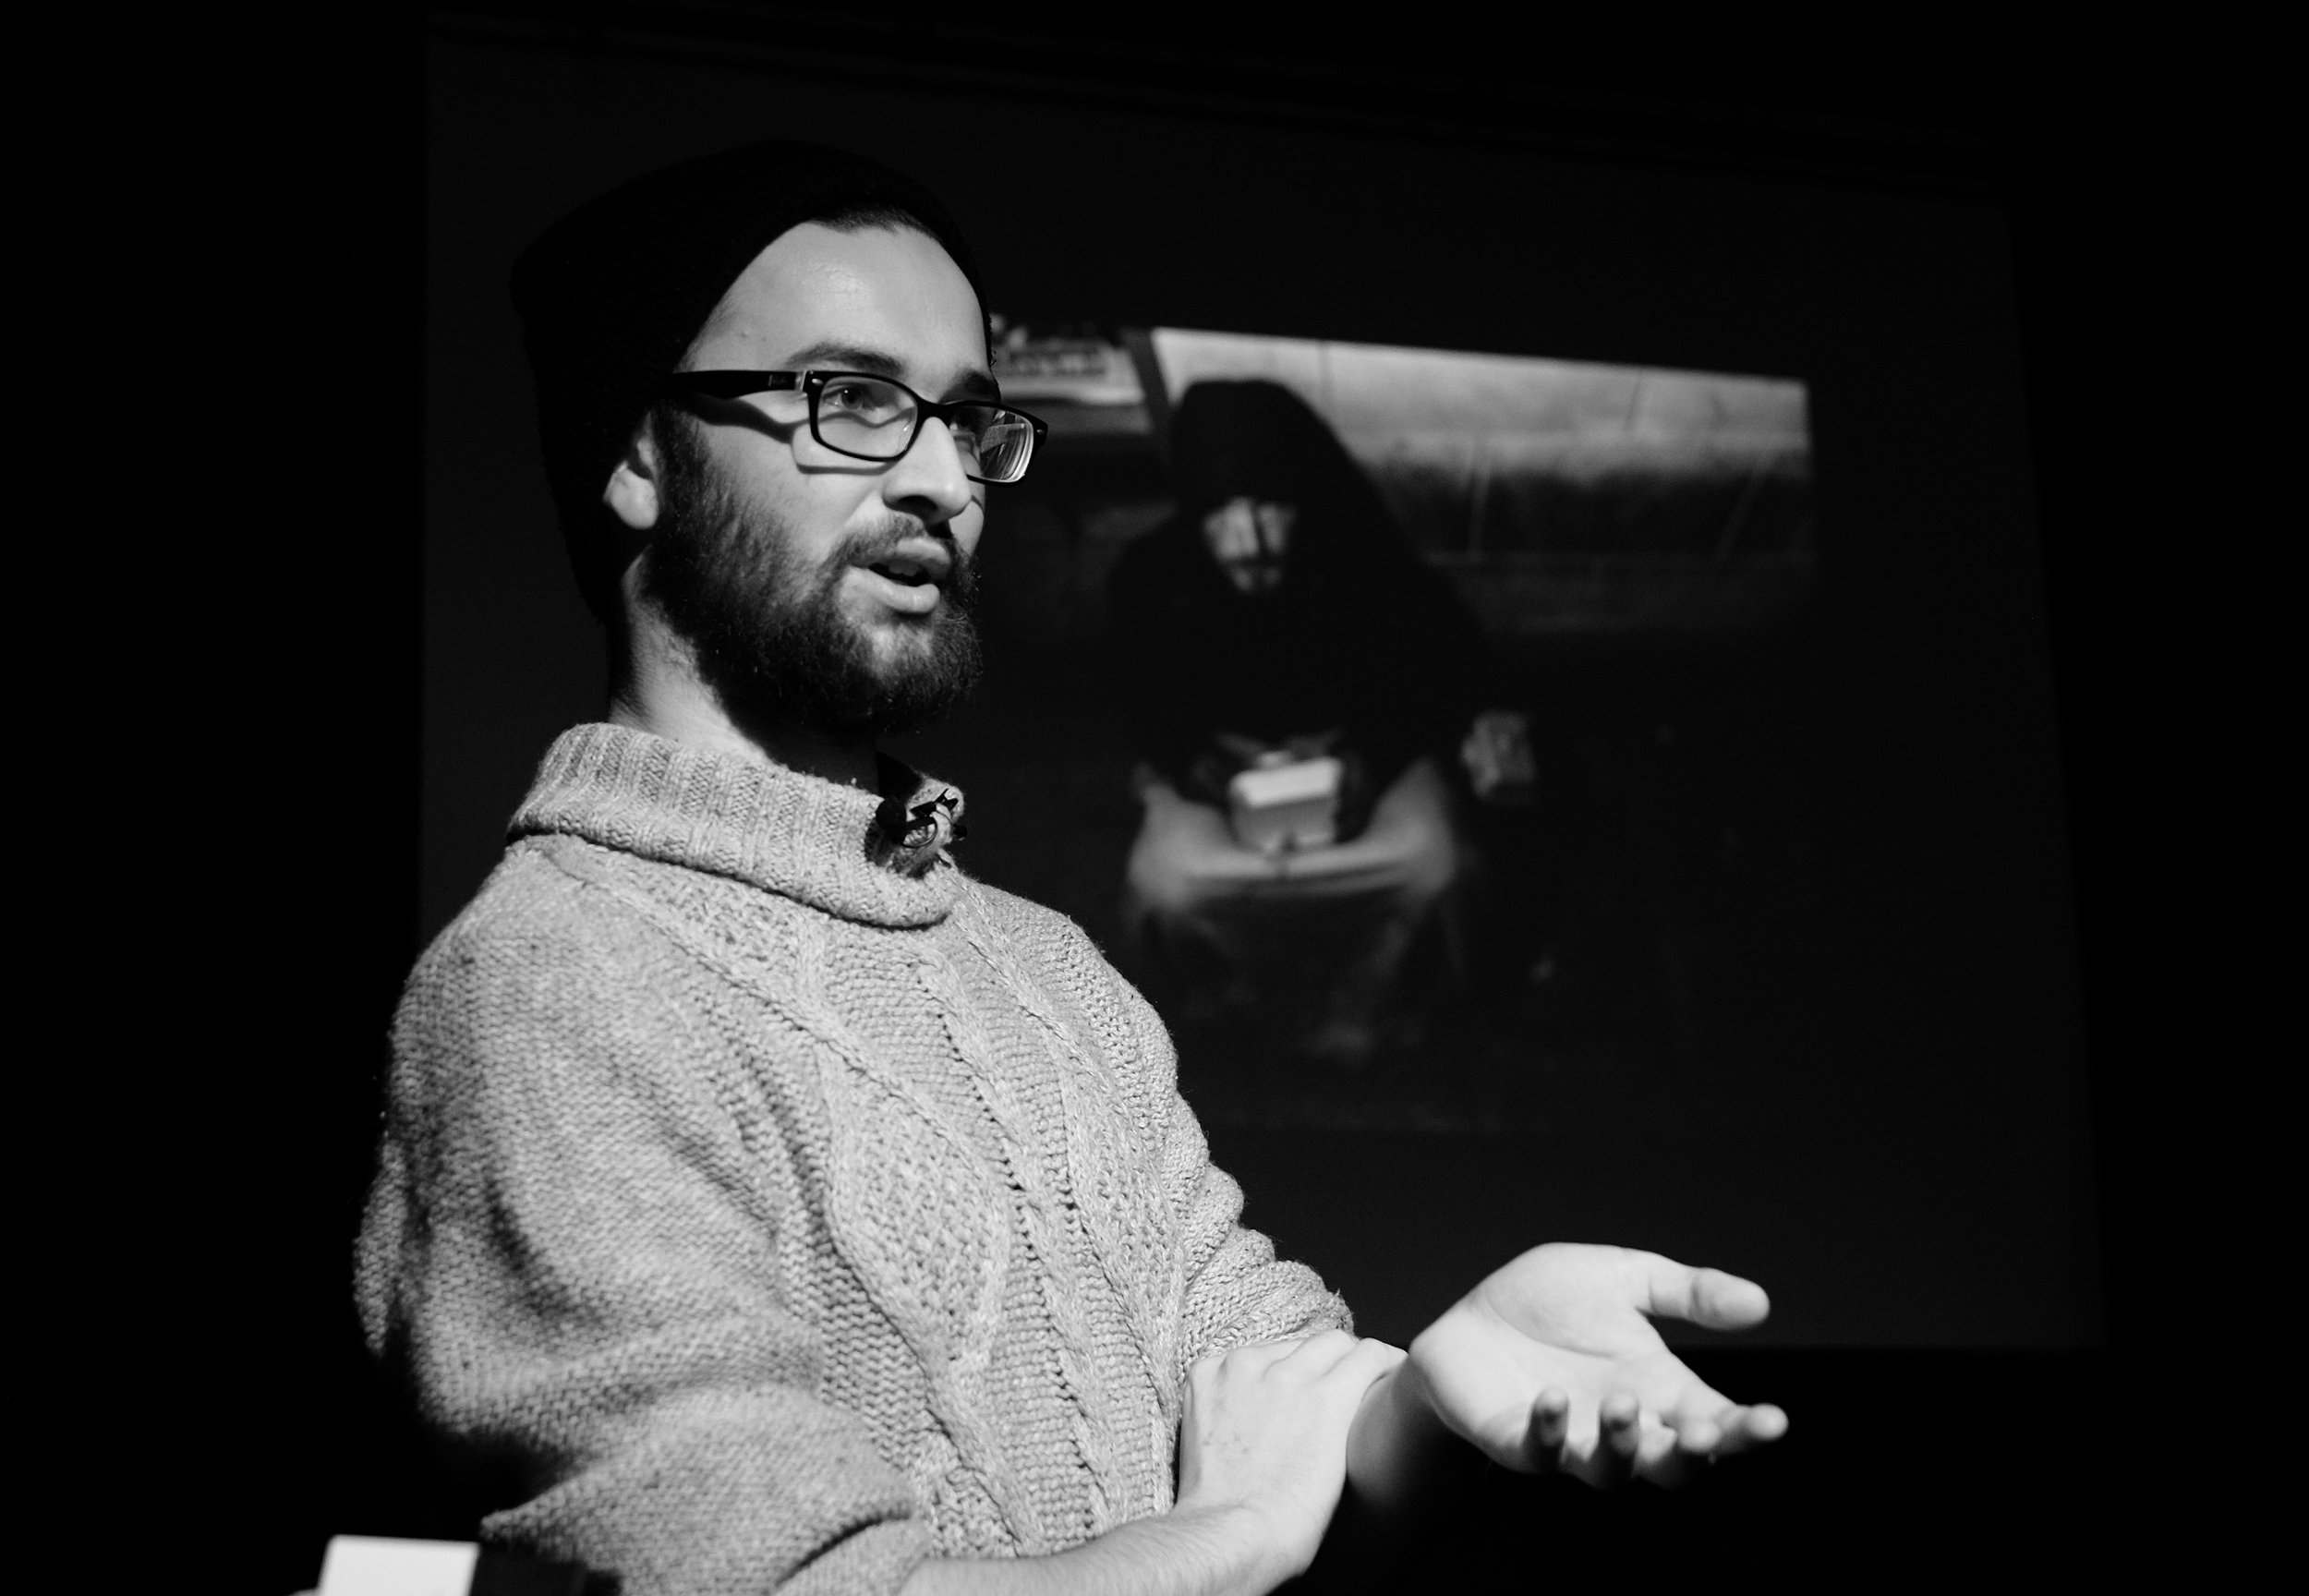 Ben Blyth discussing his Cardiff Homeless project at Ffoton Wales' January '17 Social meet-up